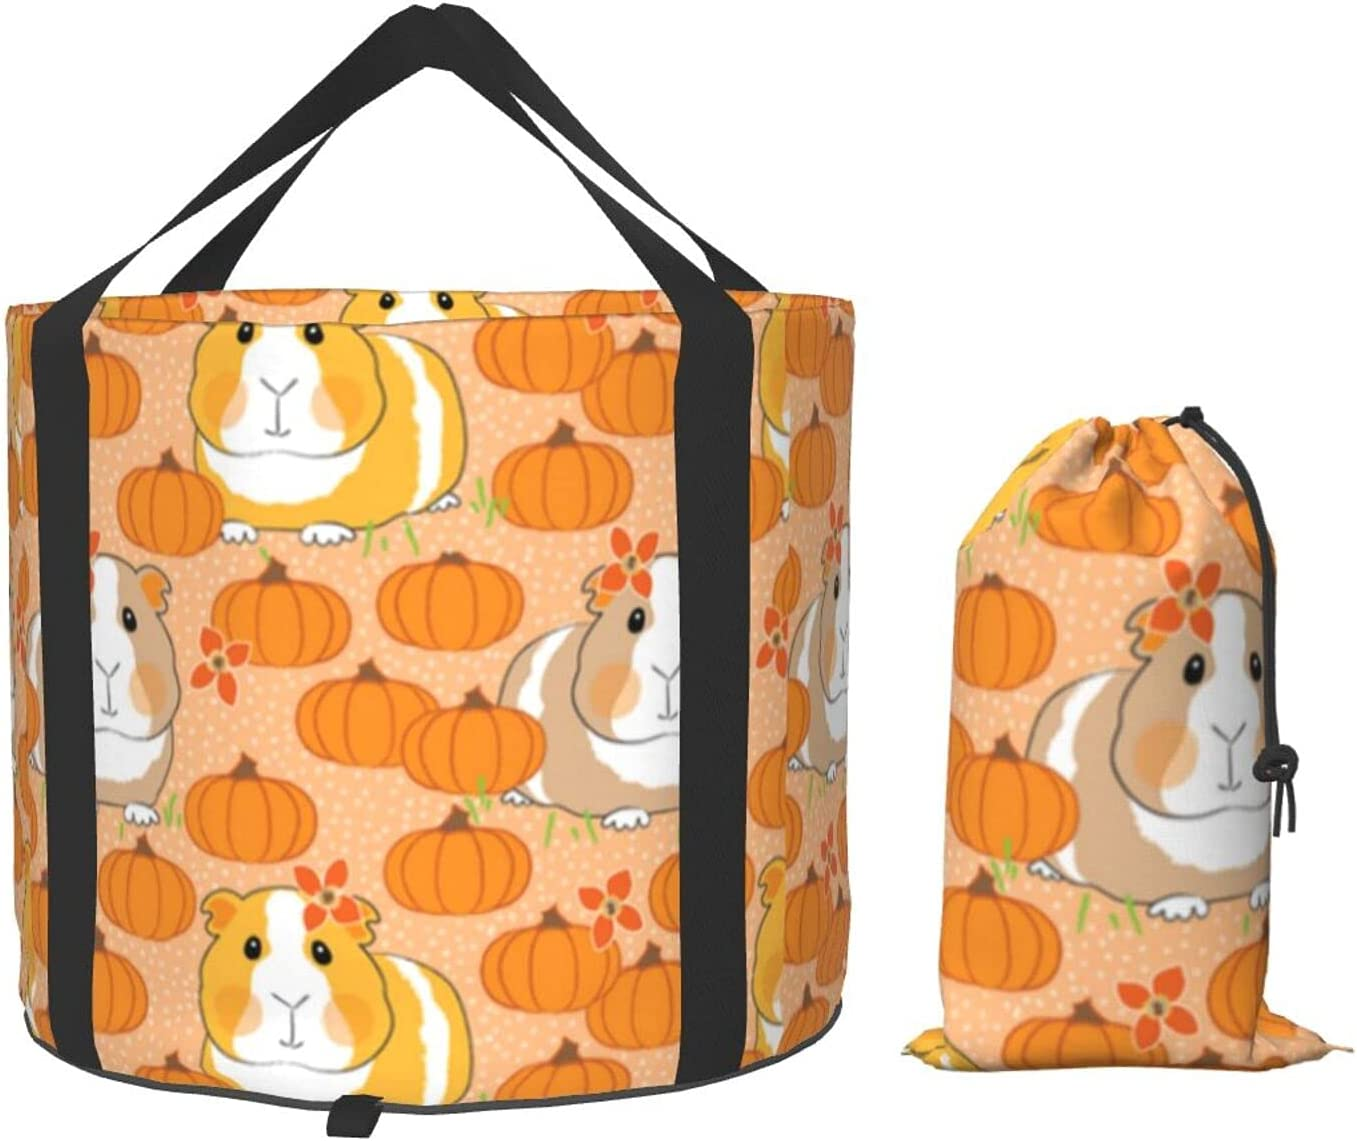 Multifunctional Latest item Portable Collapsible Bucket Pigs Guinea Pumpkins Ranking TOP12